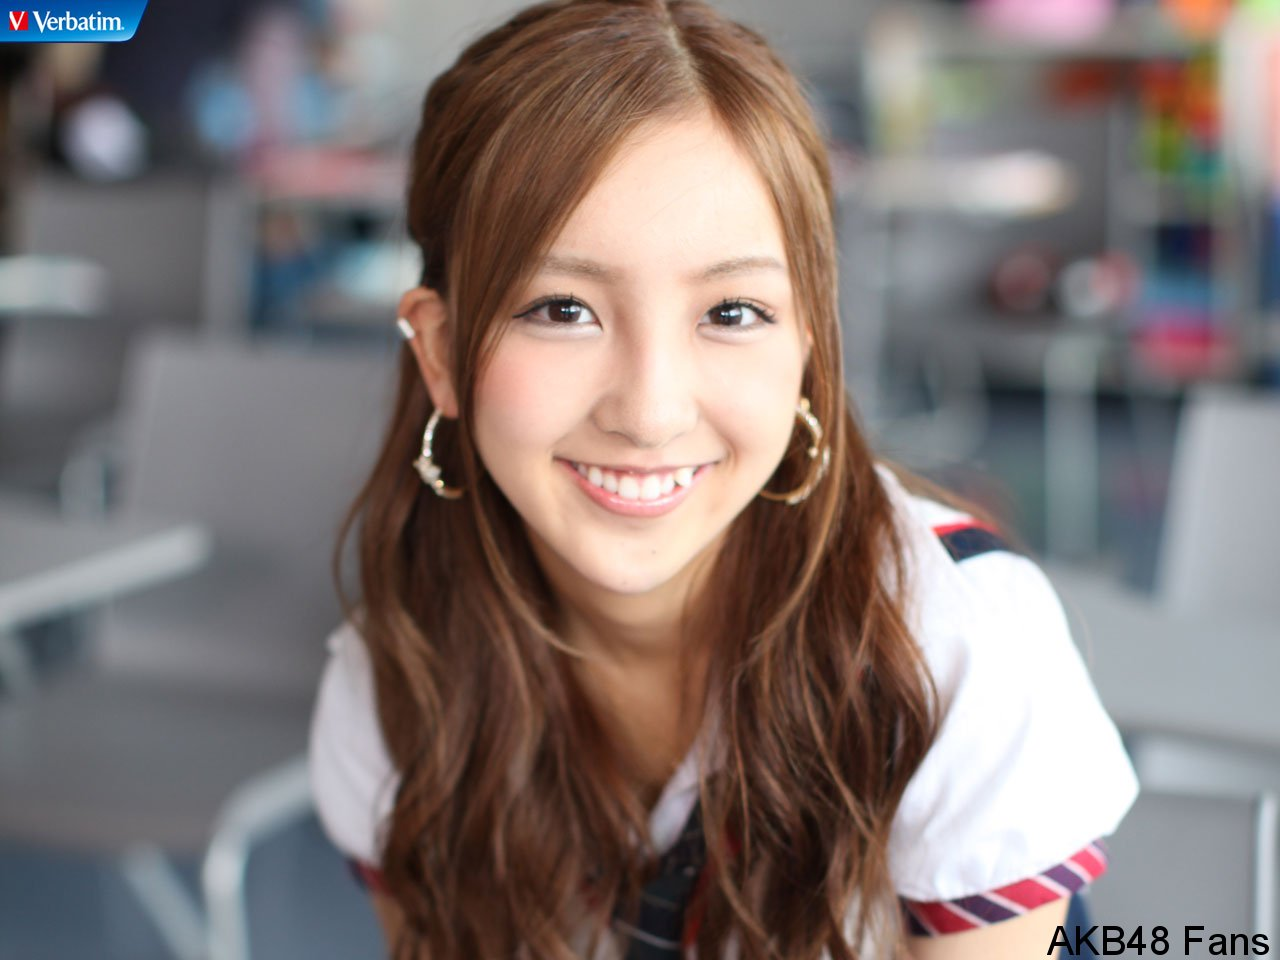 http://welshjapanotaku.files.wordpress.com/2011/02/tomochin-2.jpg